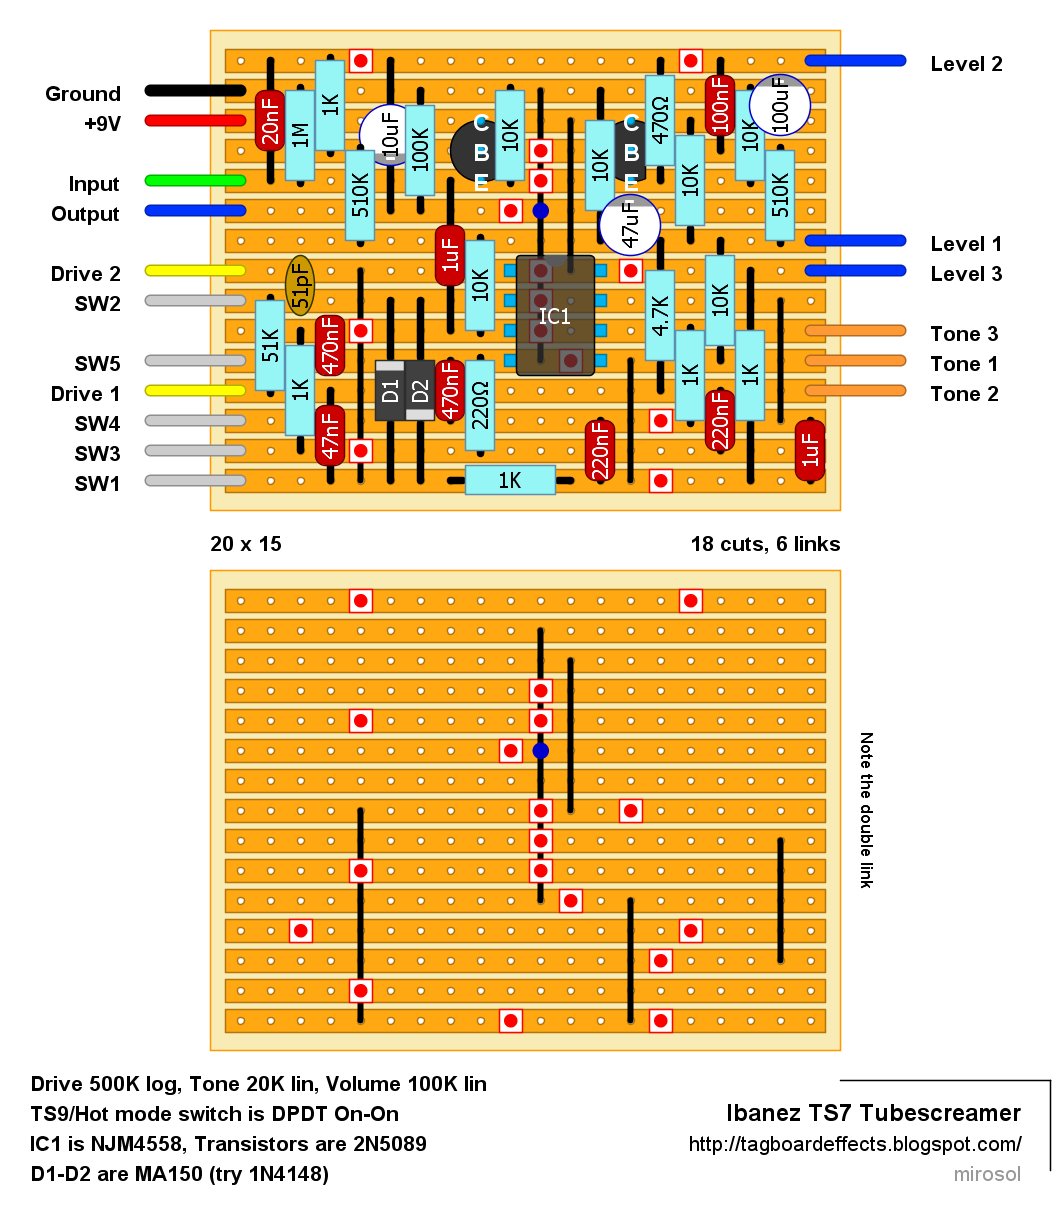 Guitar FX Layouts: Ibanez TS7 Tubescreamer on